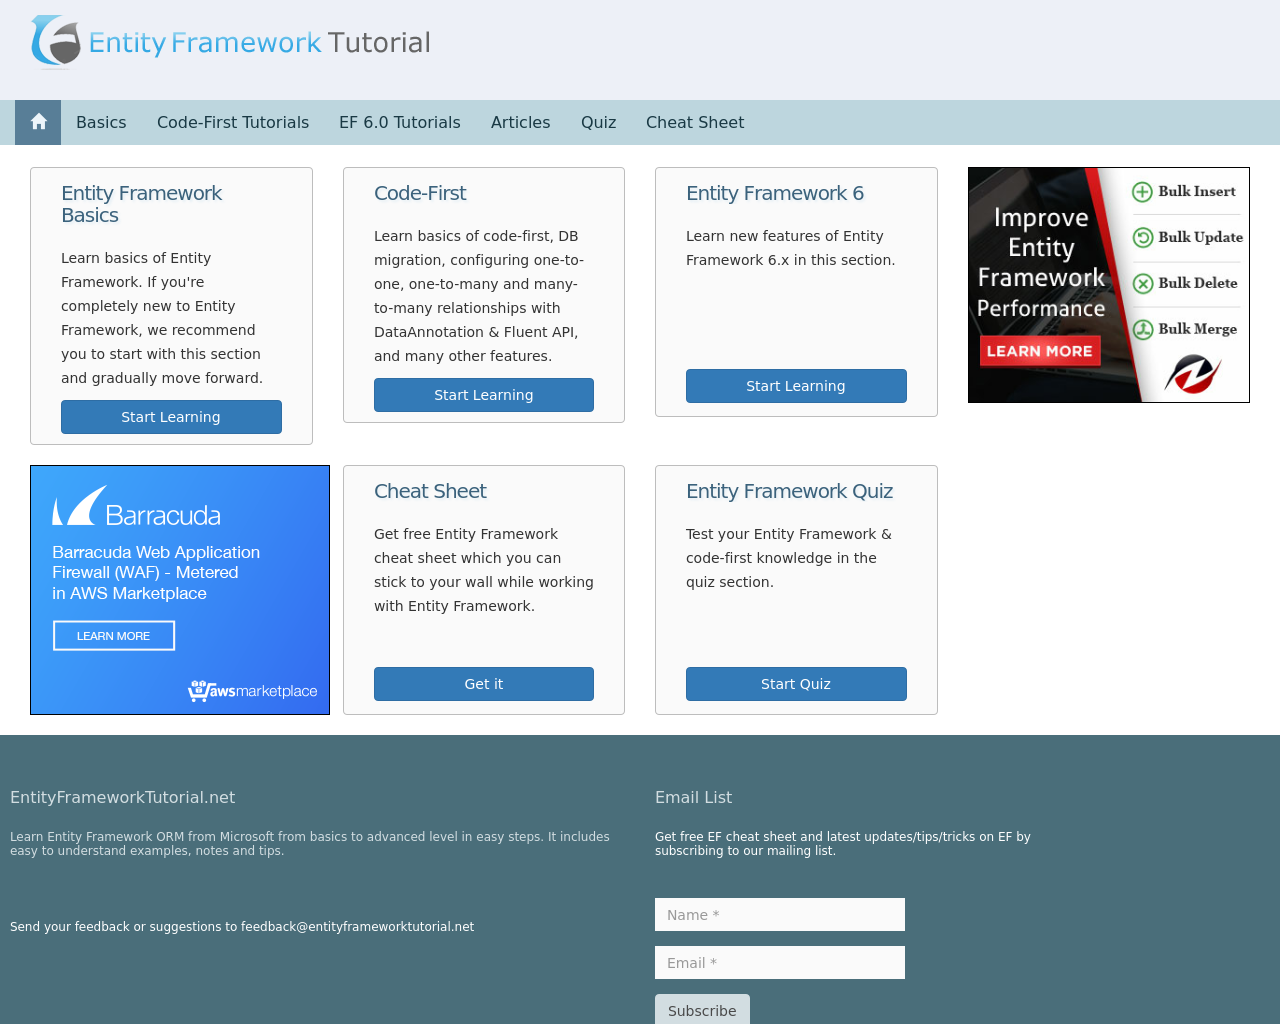 Entity-Framework-Tutorial-Advertising-Reviews-Pricing